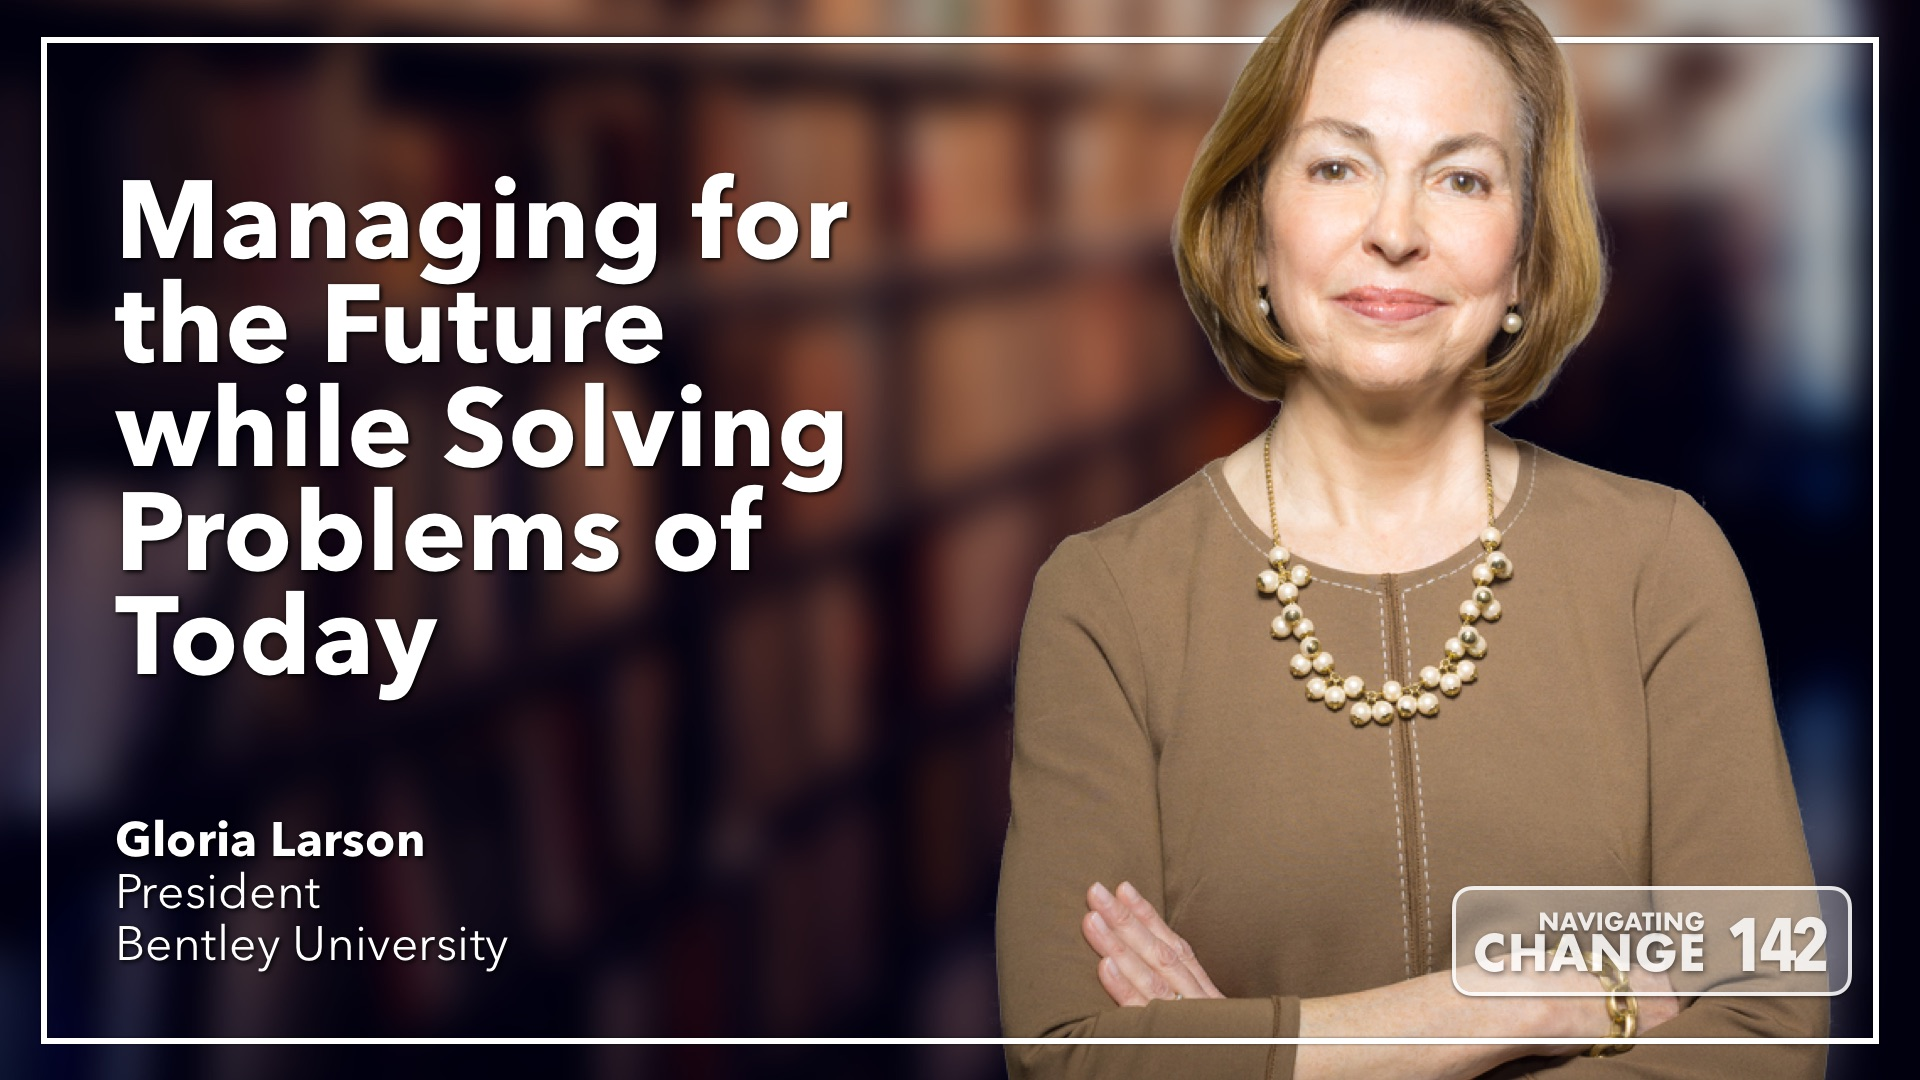 Listen to Gloria Larson on Navigating Change The Education Podcast